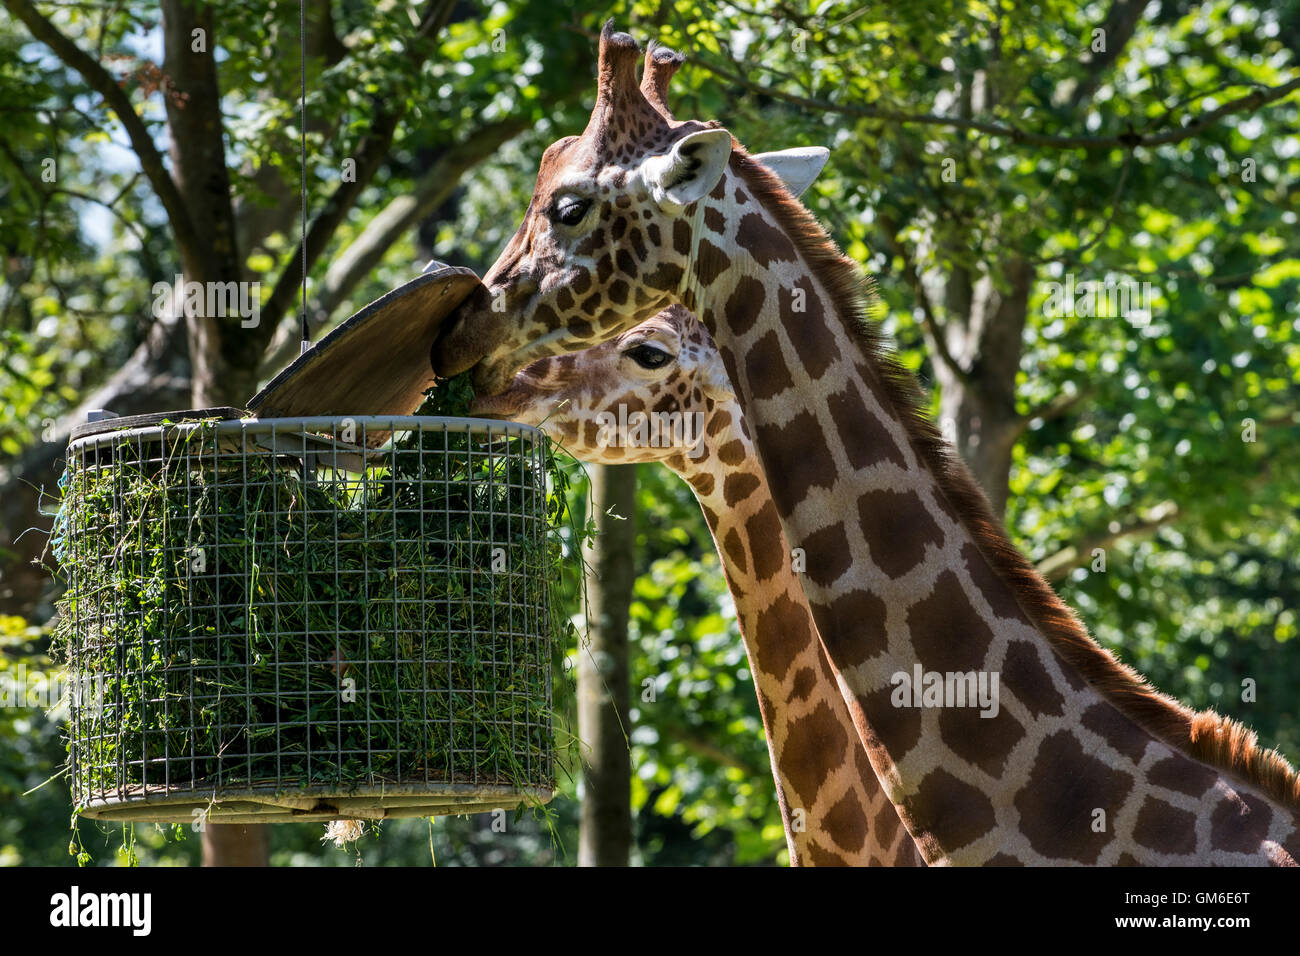 Close up of two giraffes eating grass during feeding time in zoo - Stock Image